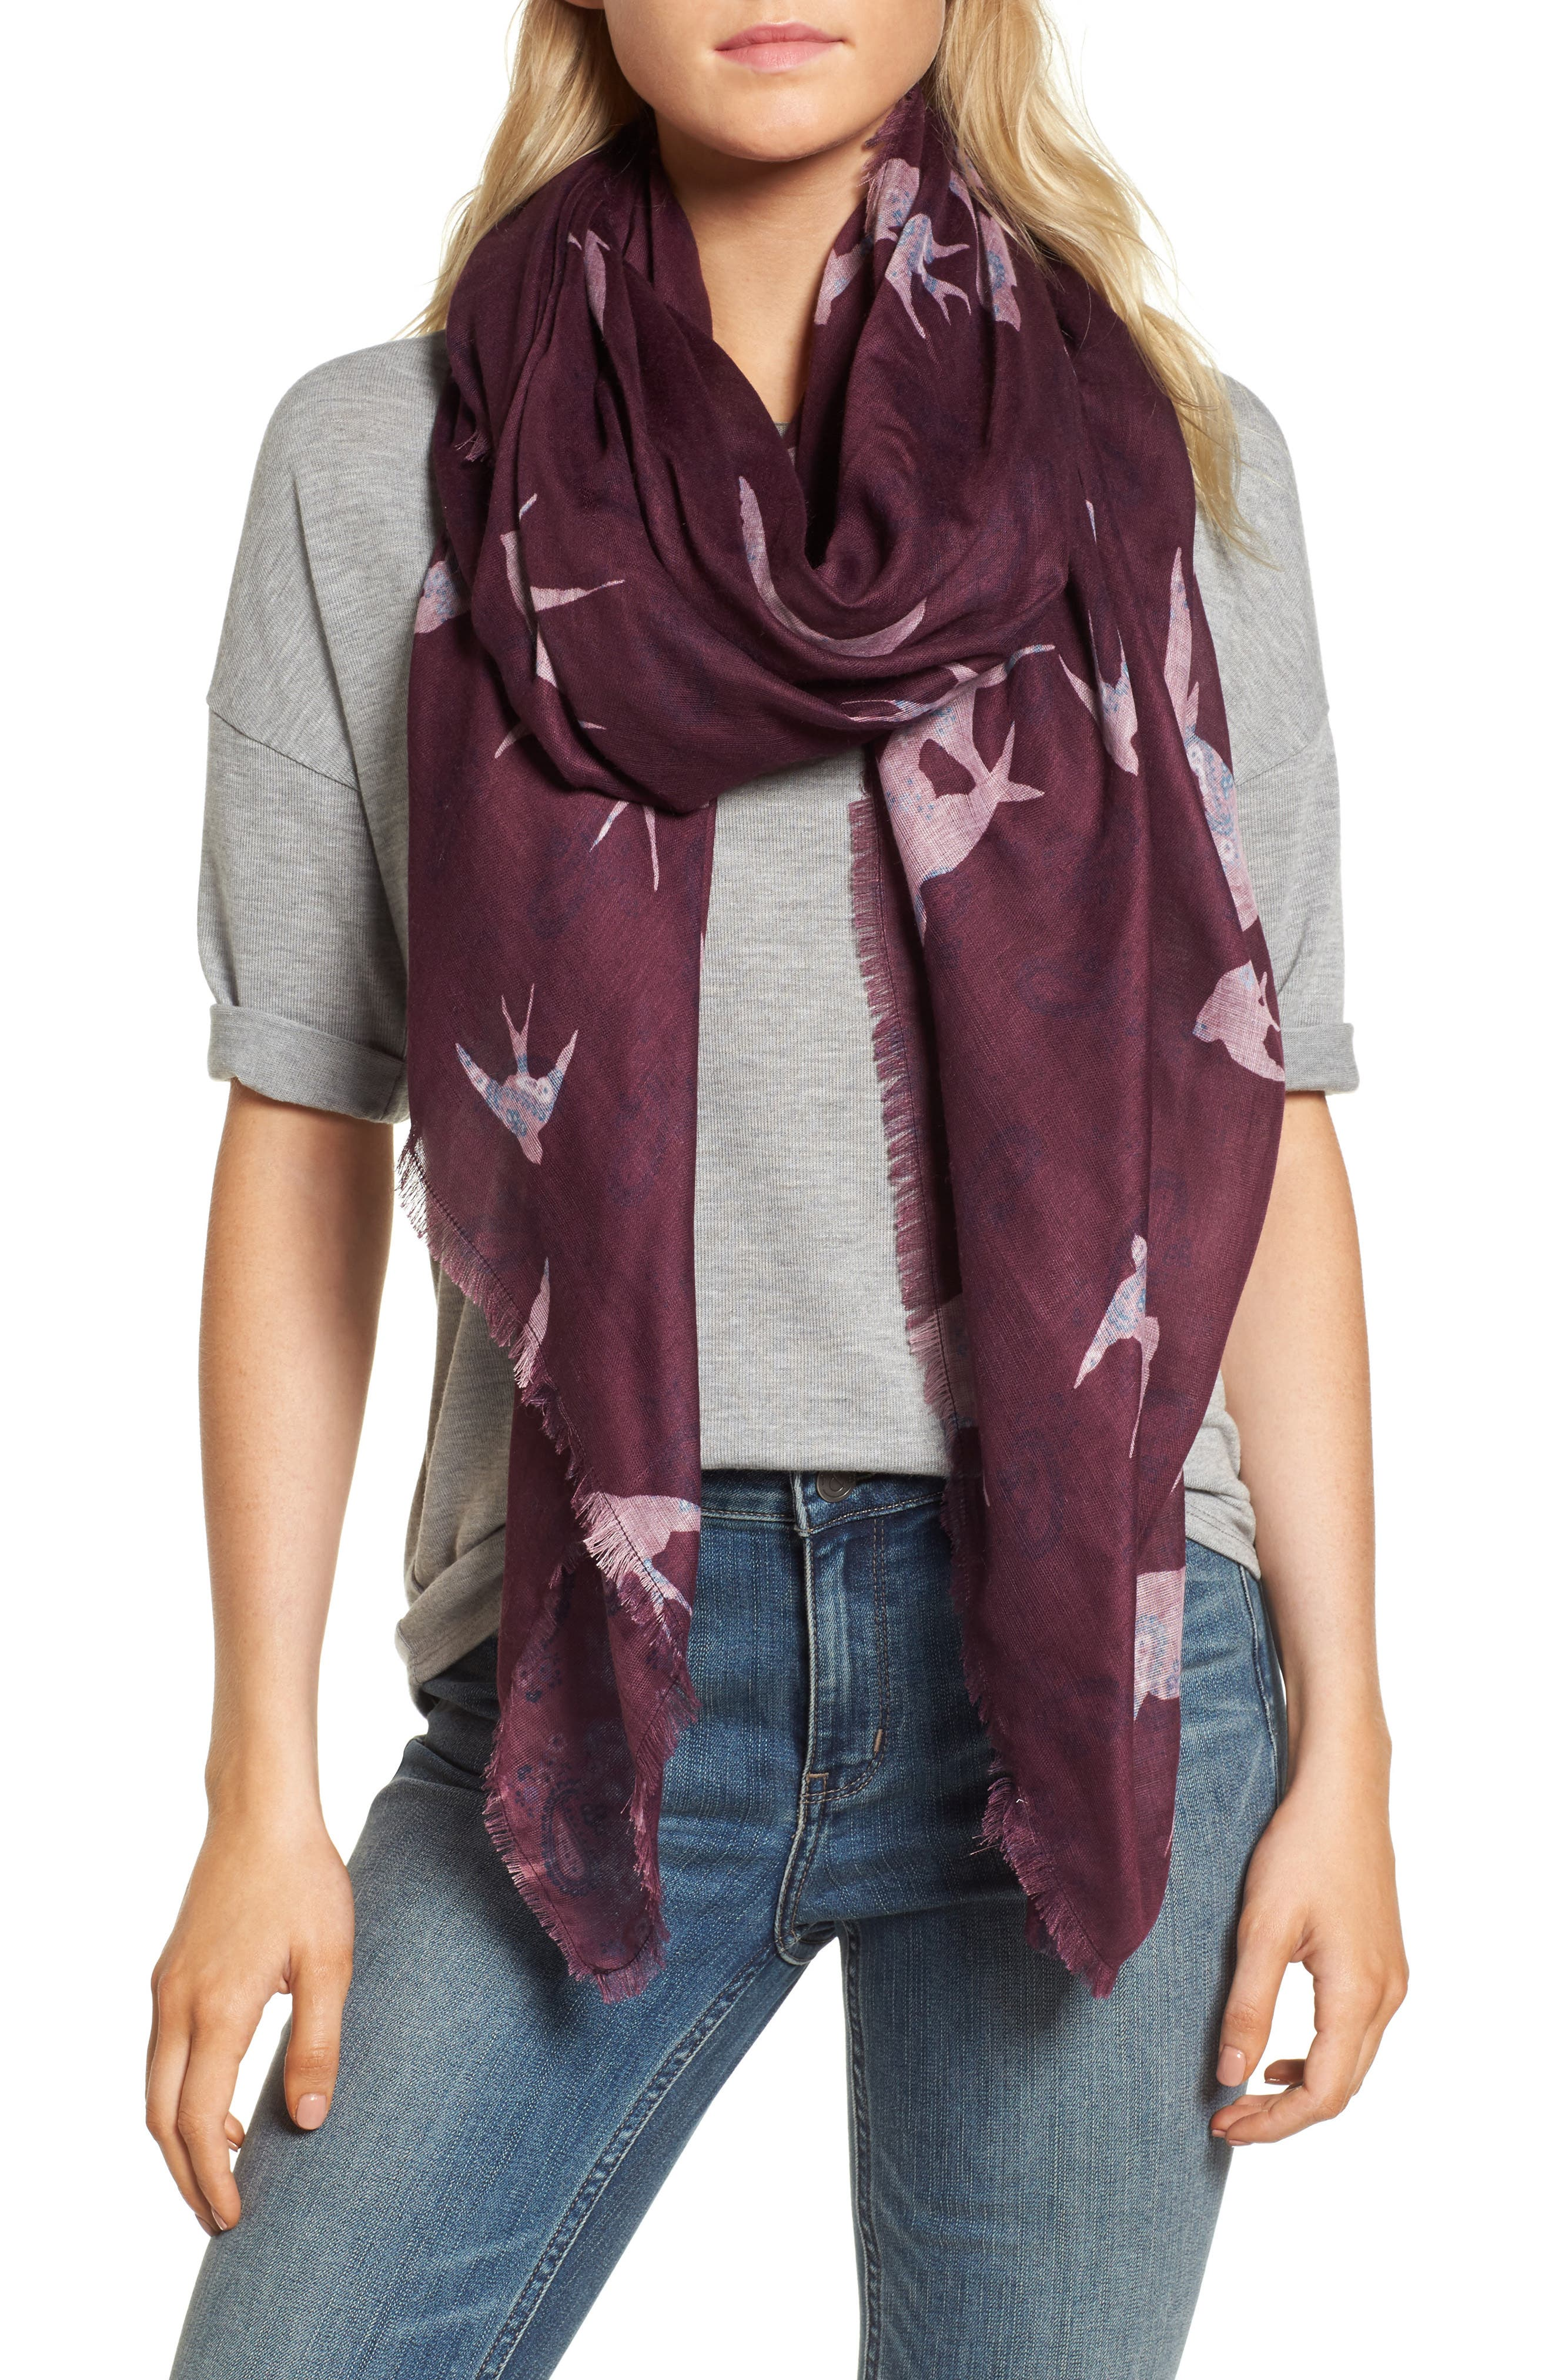 Treasure & Bond Clothing, Shoes & Accessories   Nordstrom